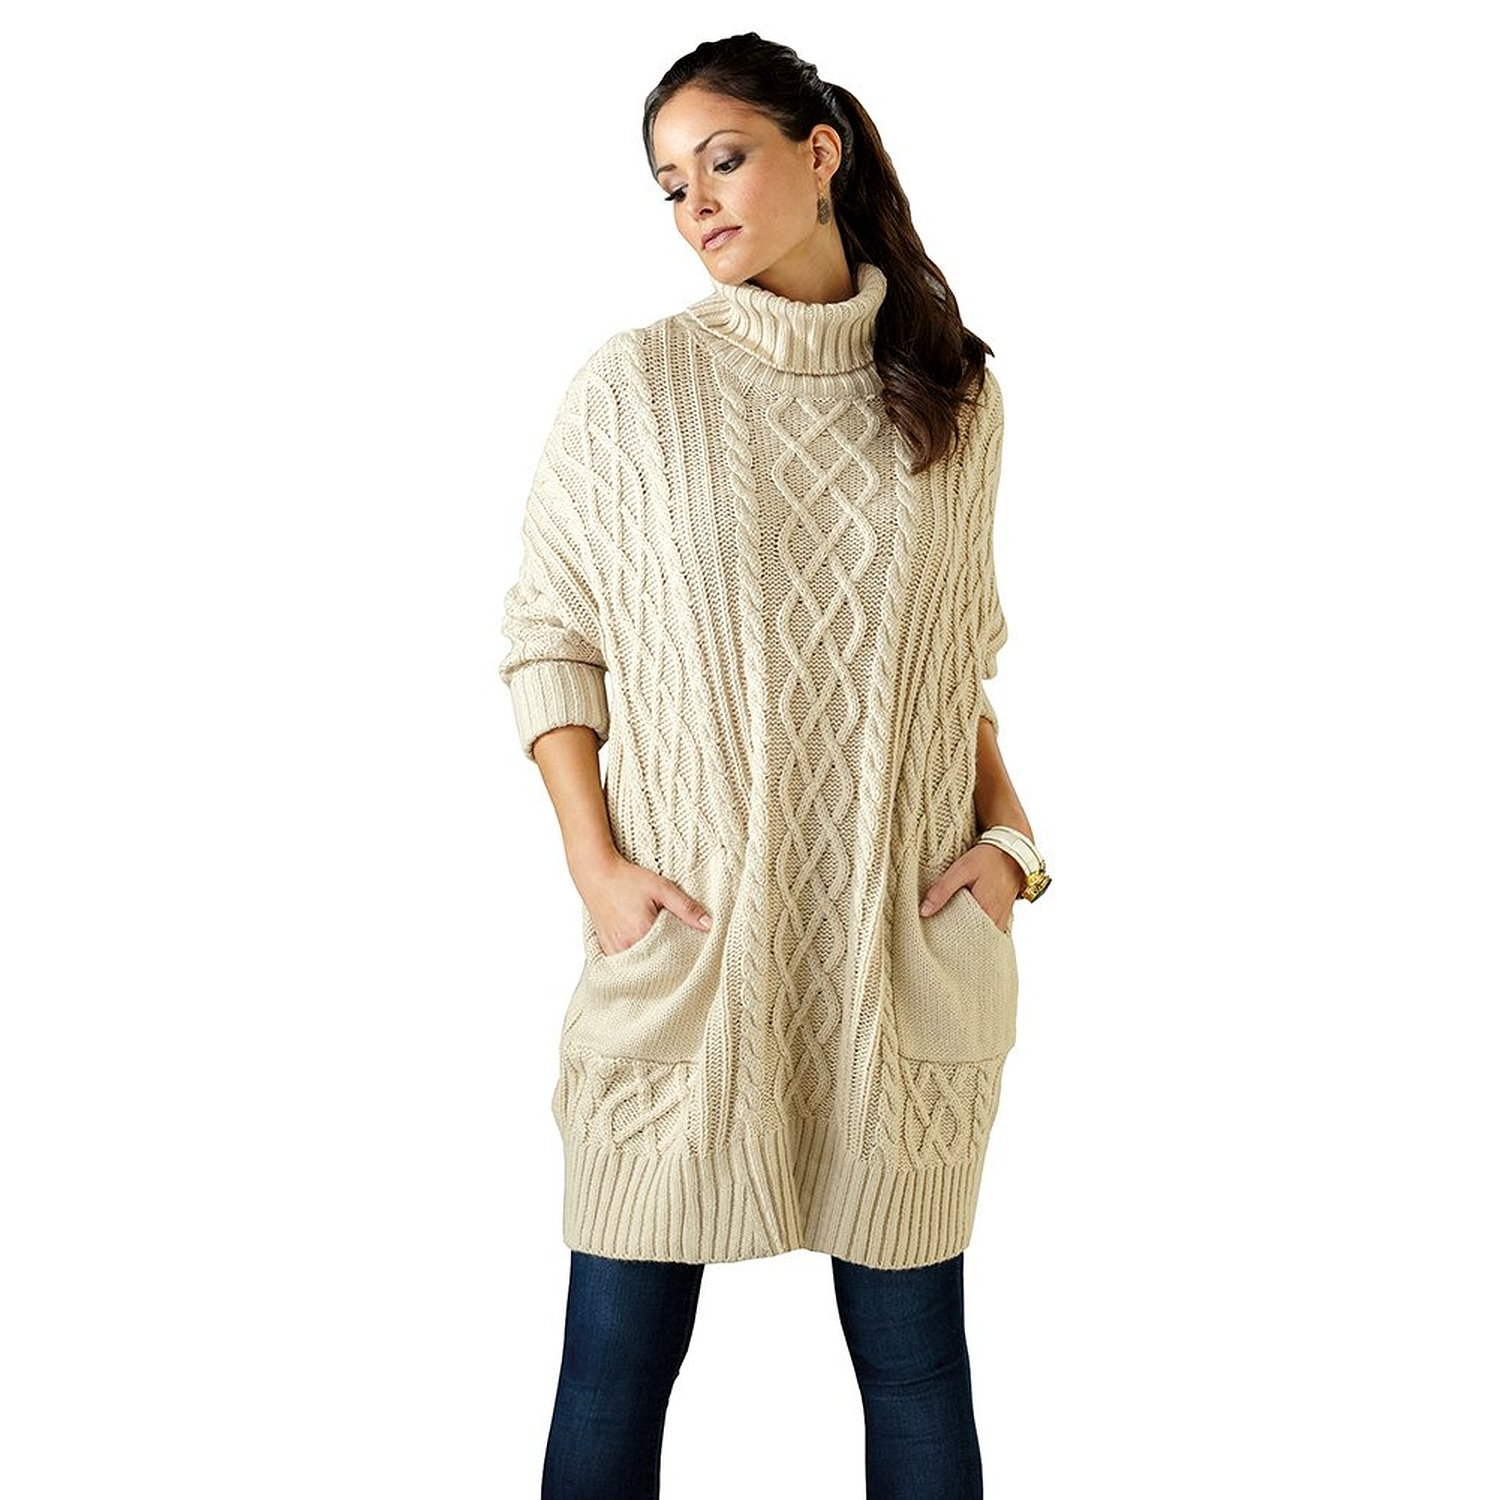 Aran pullover cowl neck cable knit sweater dress